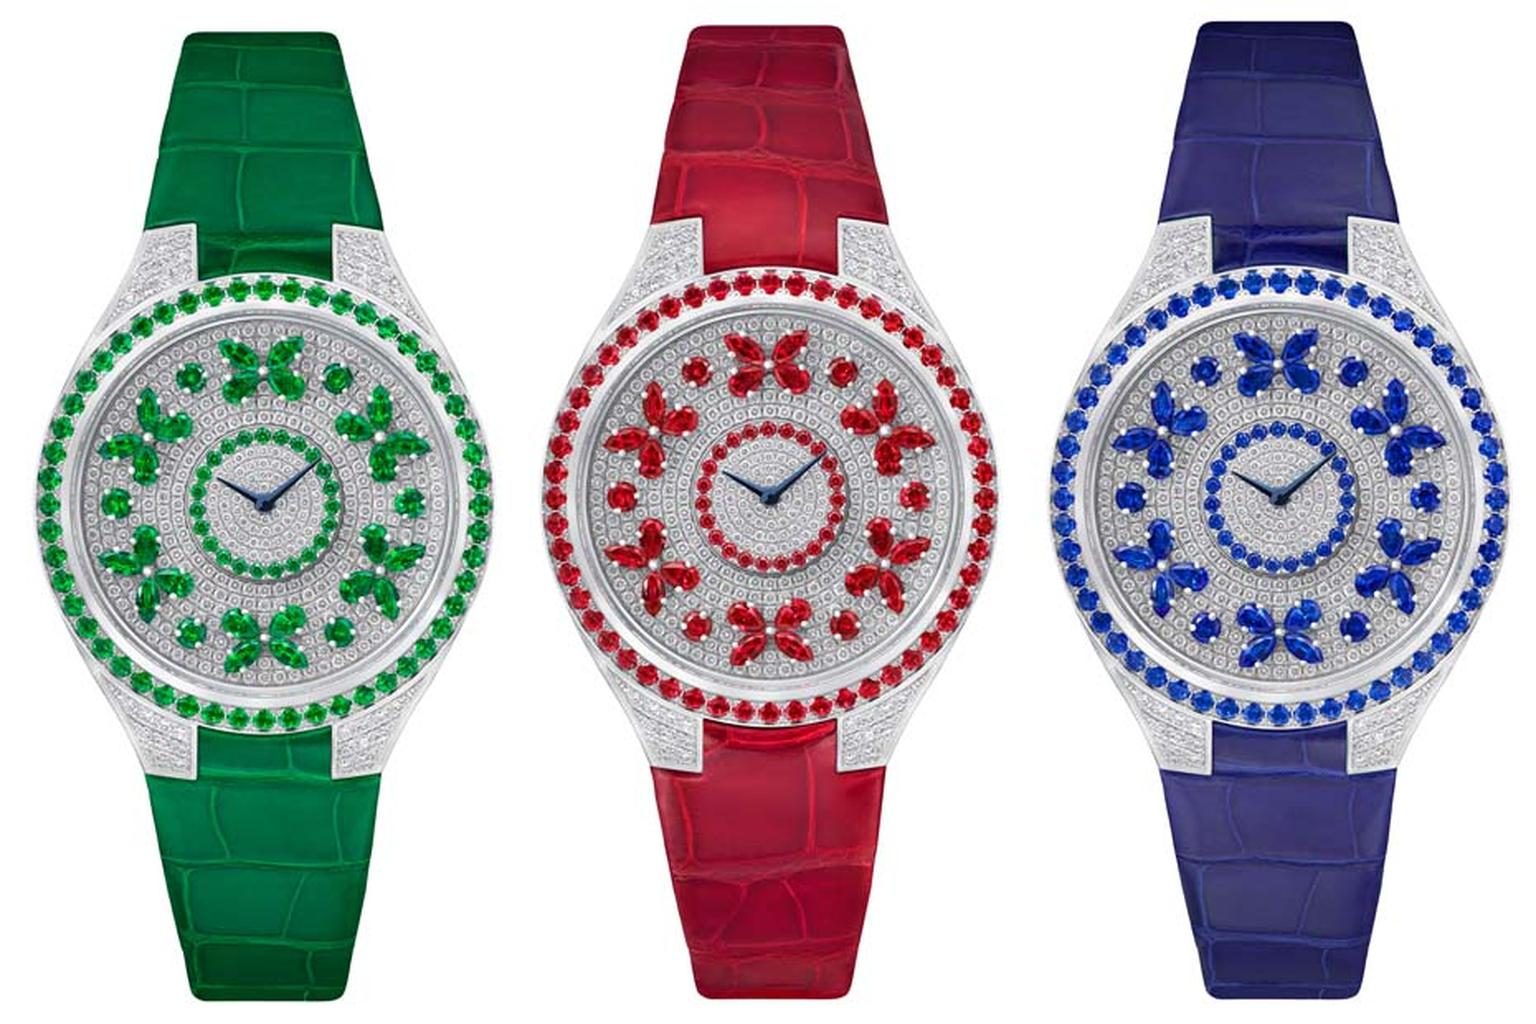 Butterfly and fish watches_Graff_Butterfly disco diamond watches.jpg